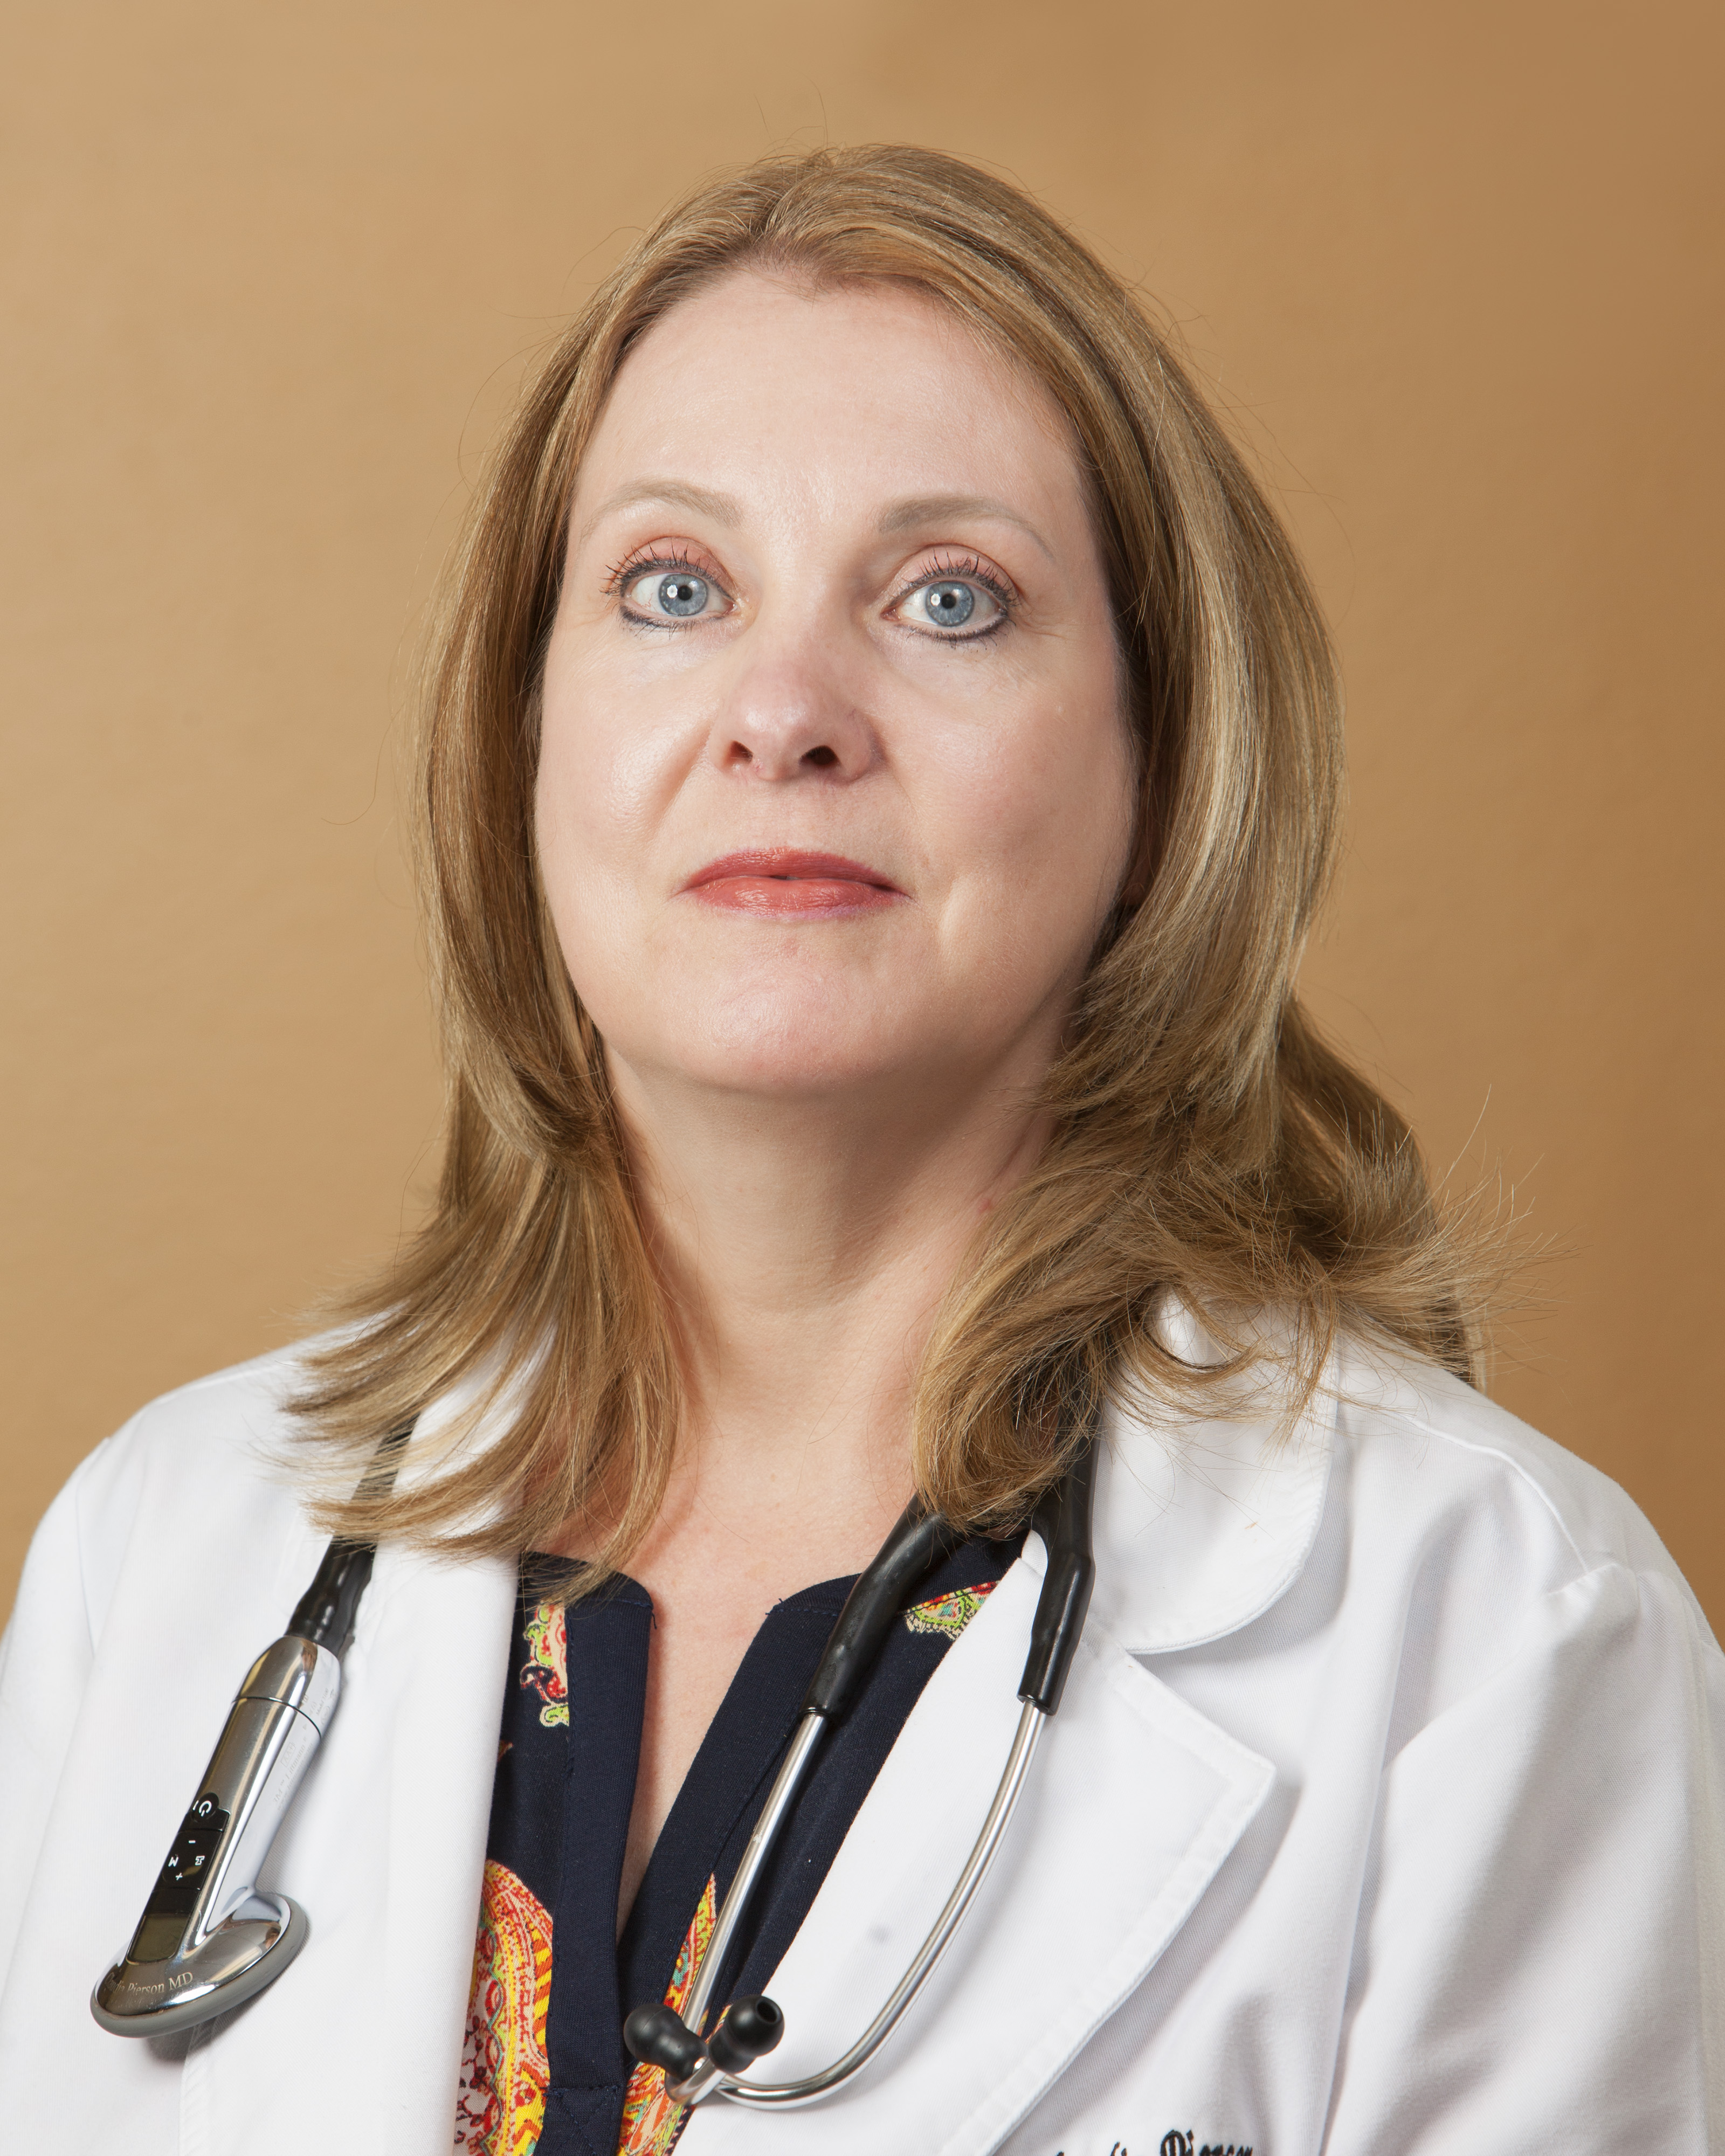 Photo of Claudia C. Pierson, M.D.